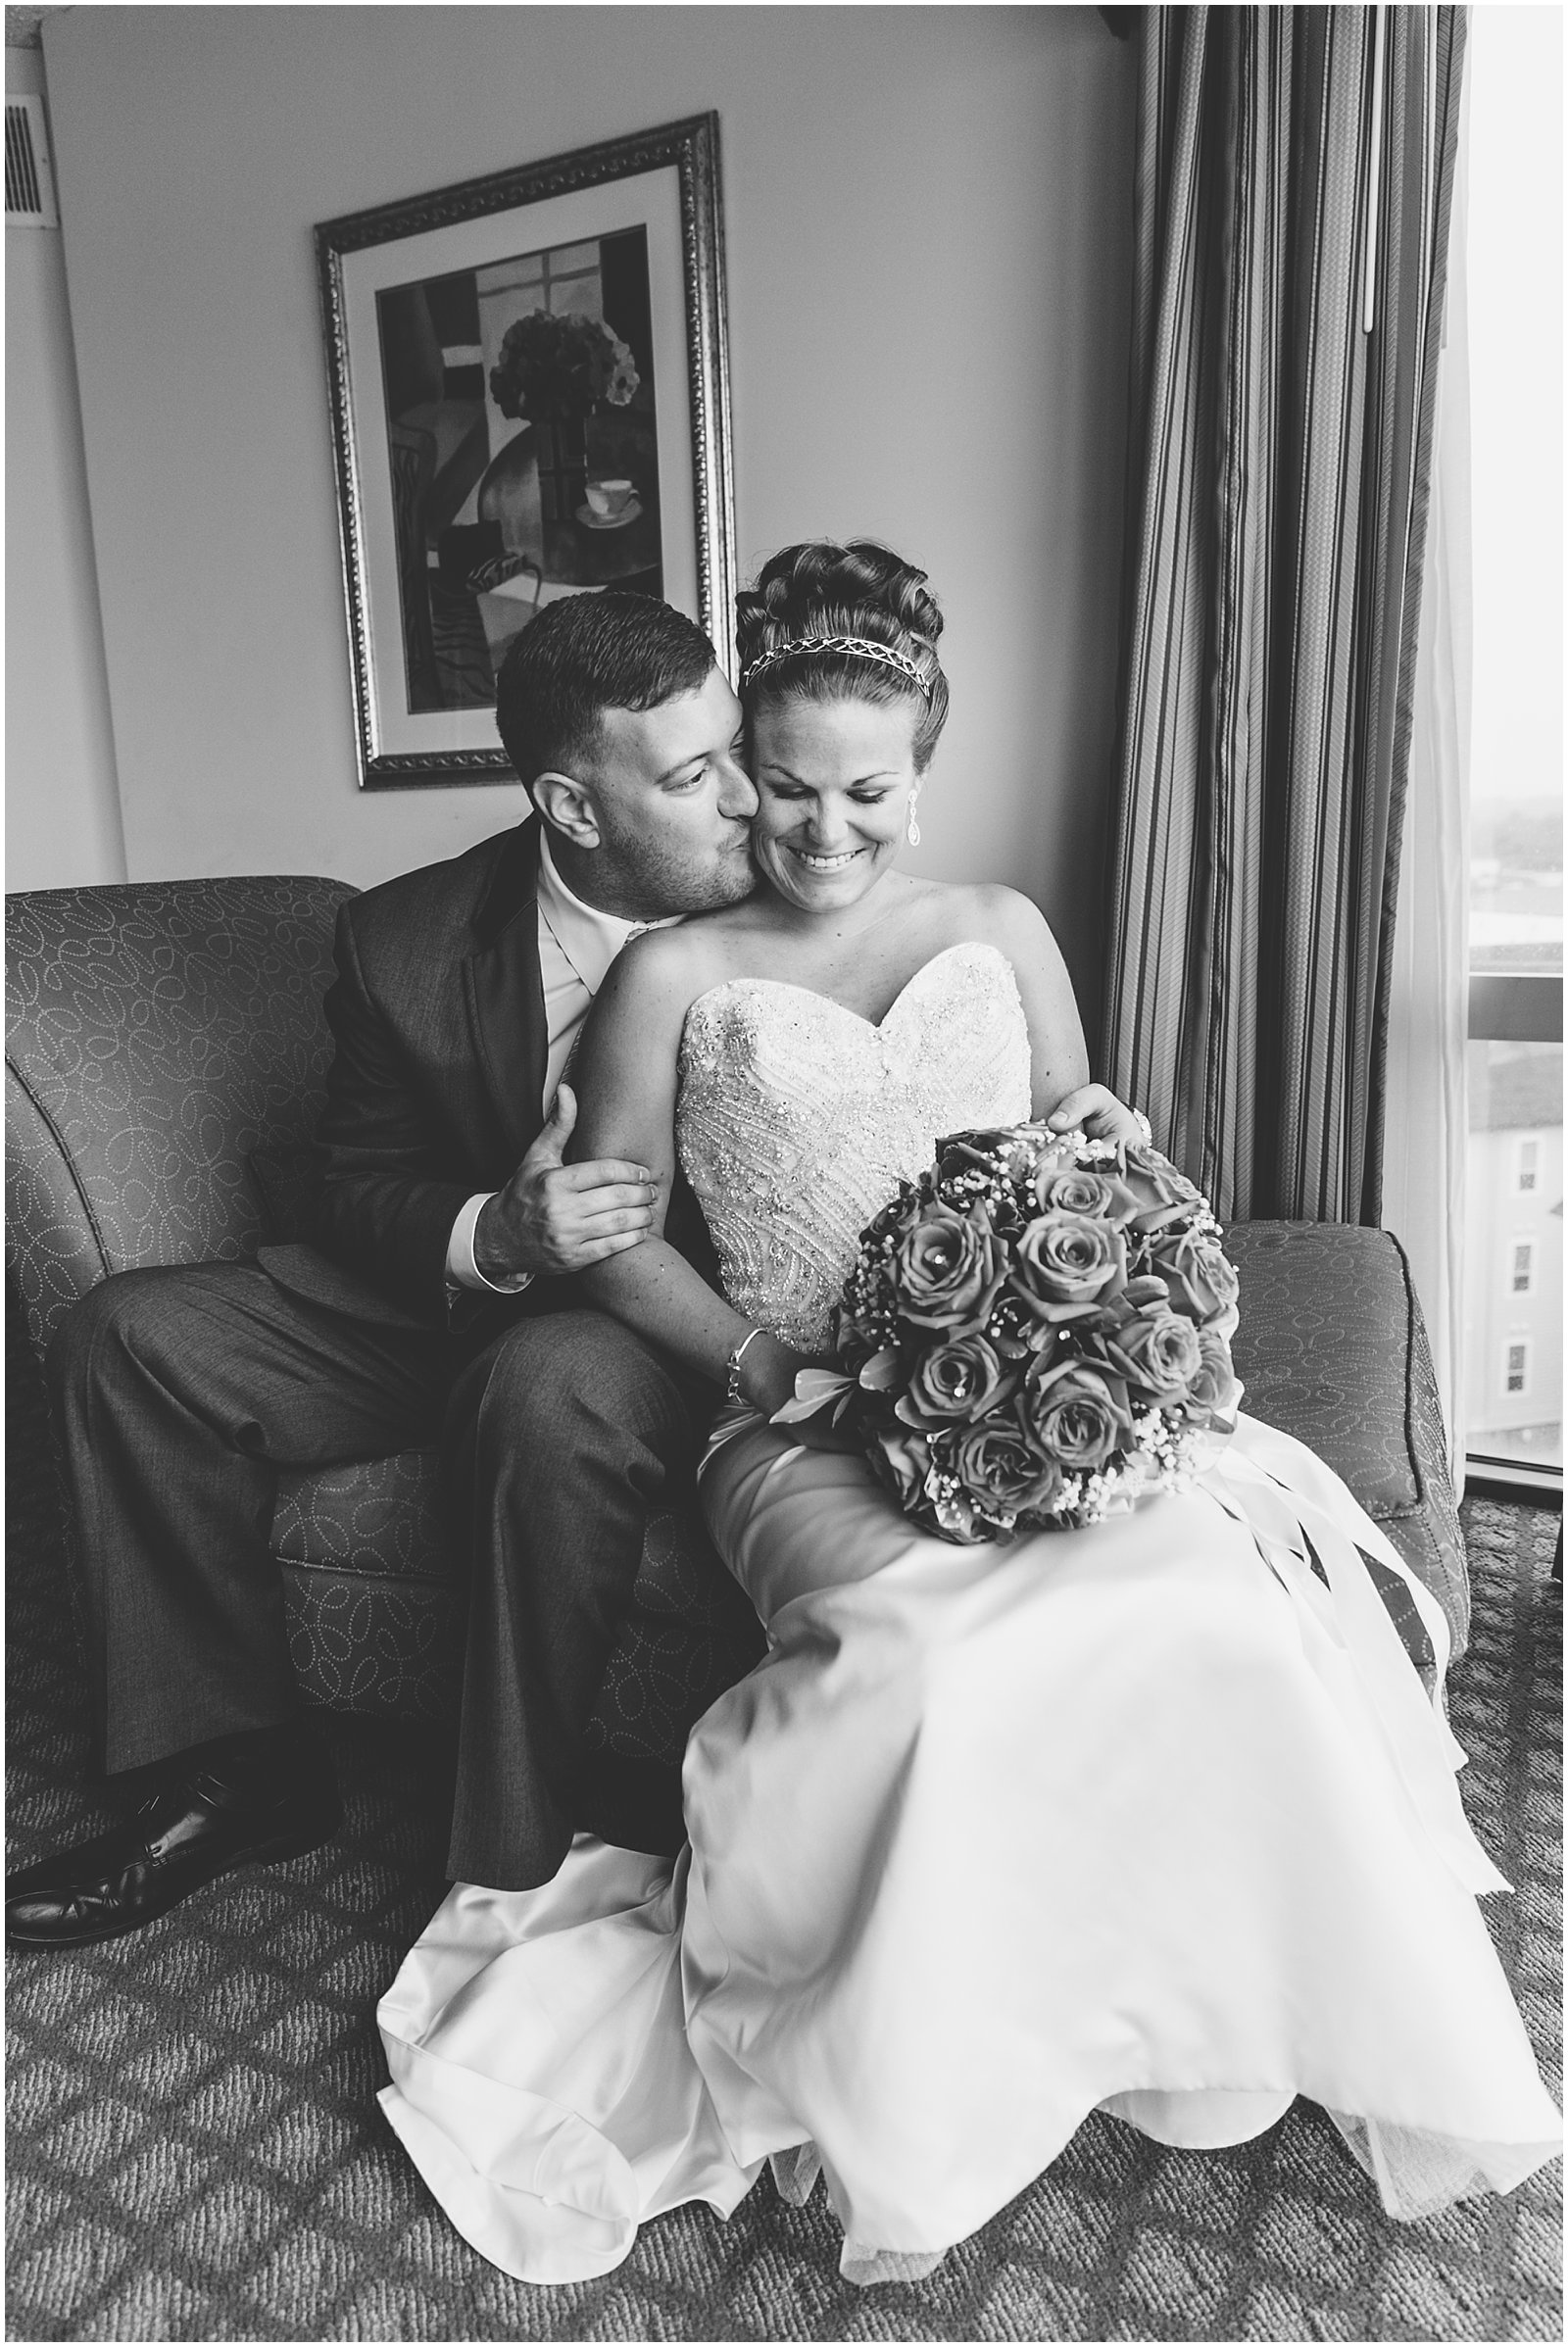 jessica_ryan_photography_wedding_virginia_beach_virginia_wedding_photographer_candid_wedding_photography_lifestyle_photojournalistic_real_moments_0104